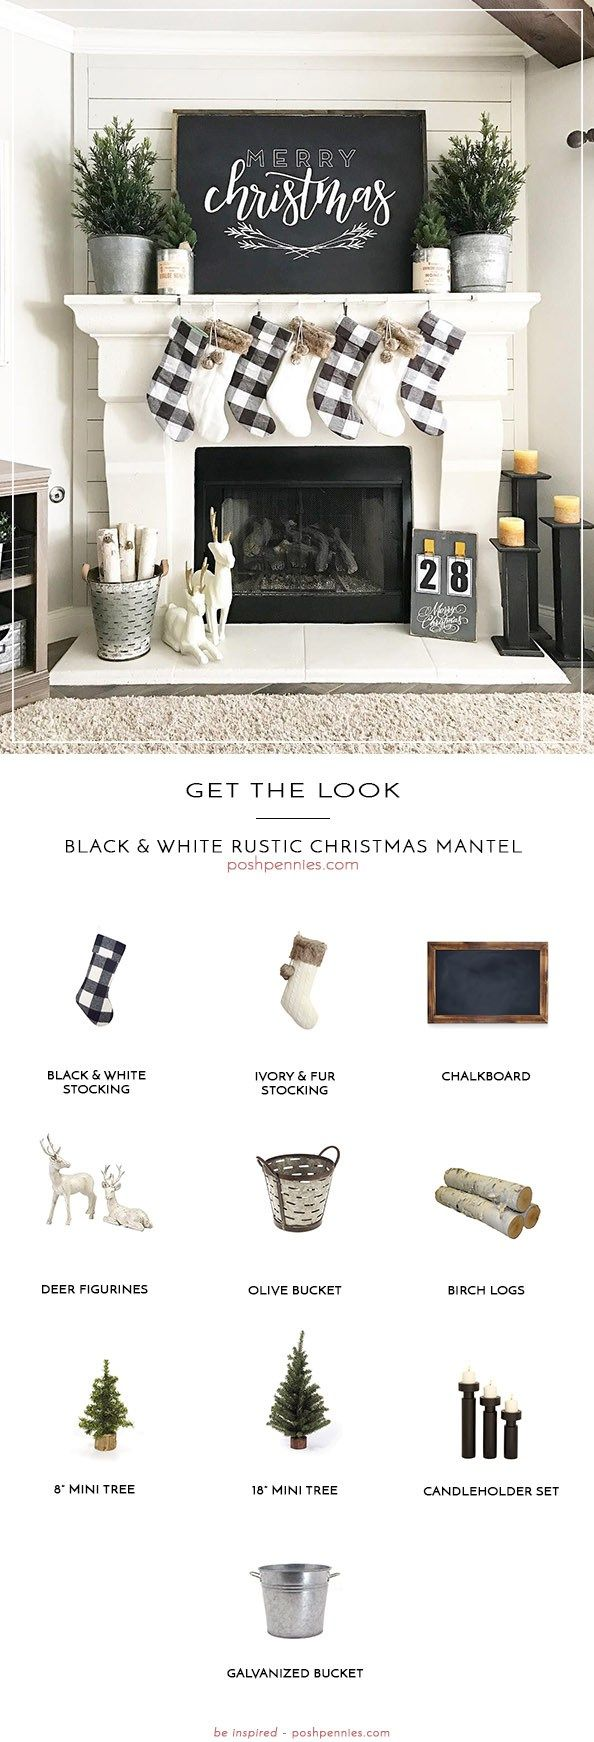 How To Create The Perfect Black & White Rustic Christmas Mantel #holidaydecor